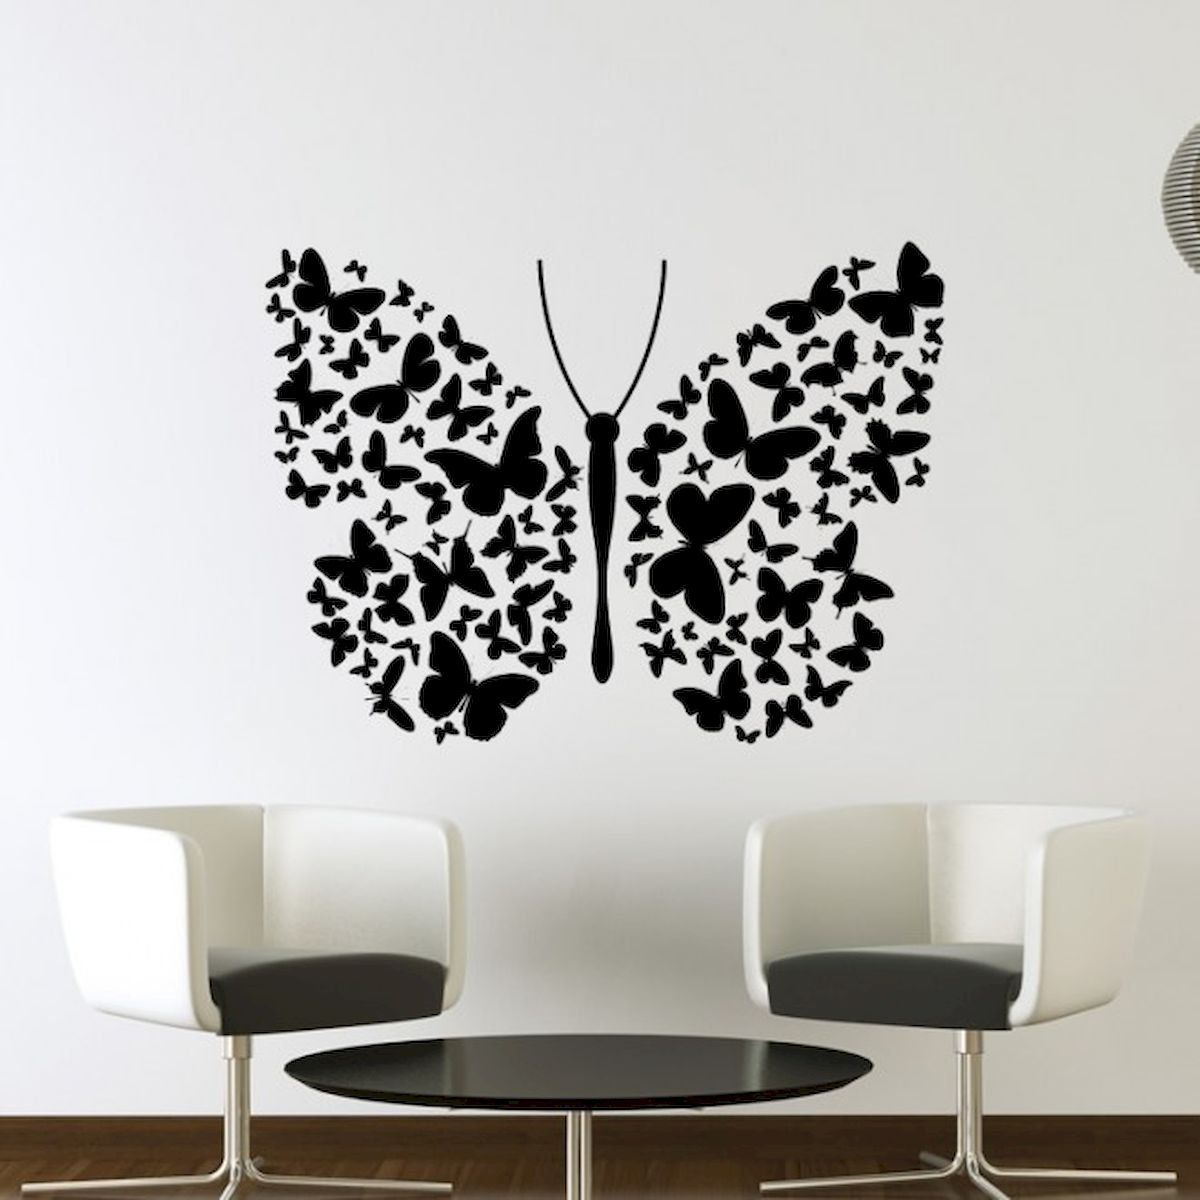 40 Awesome Wall Painting Ideas For Home Diy Home Decor Butterfly